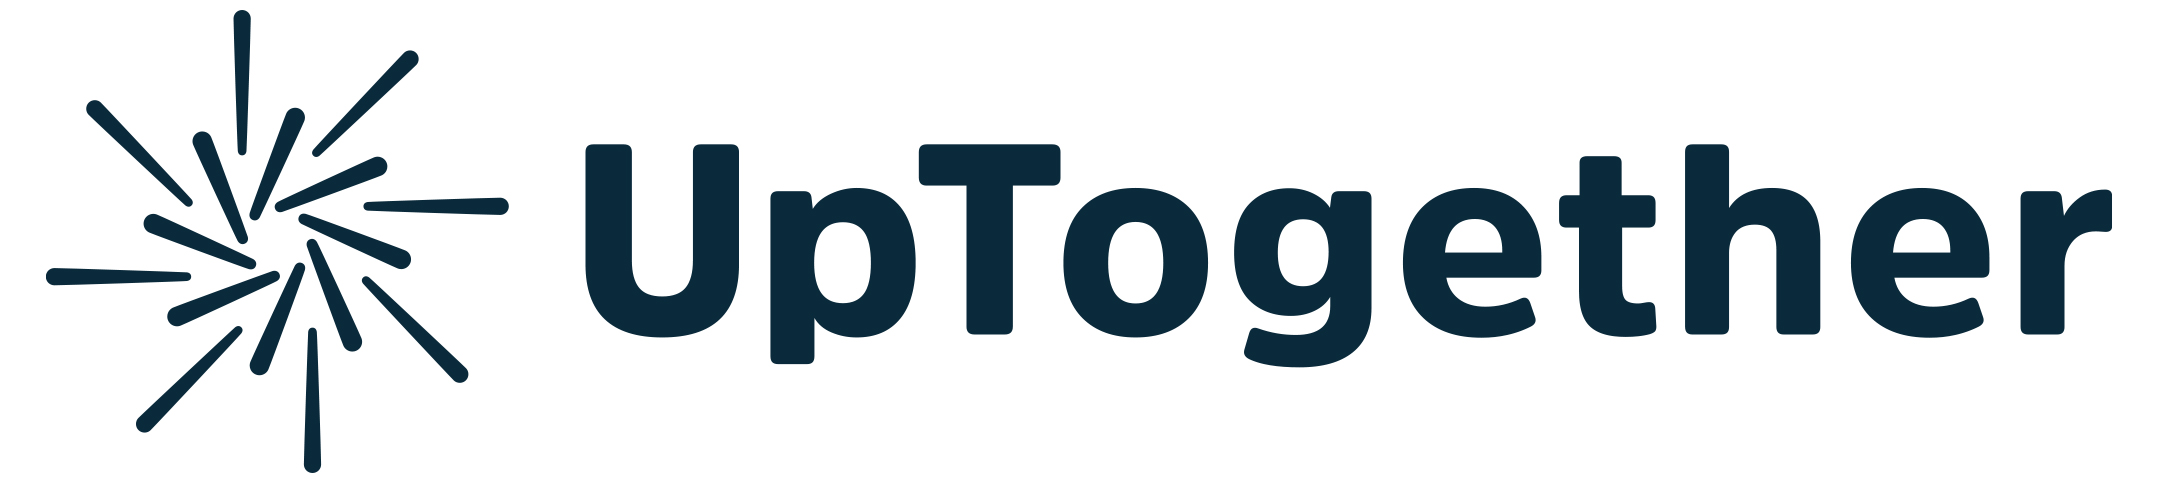 UPTOGETHER-LOGO-horizontal